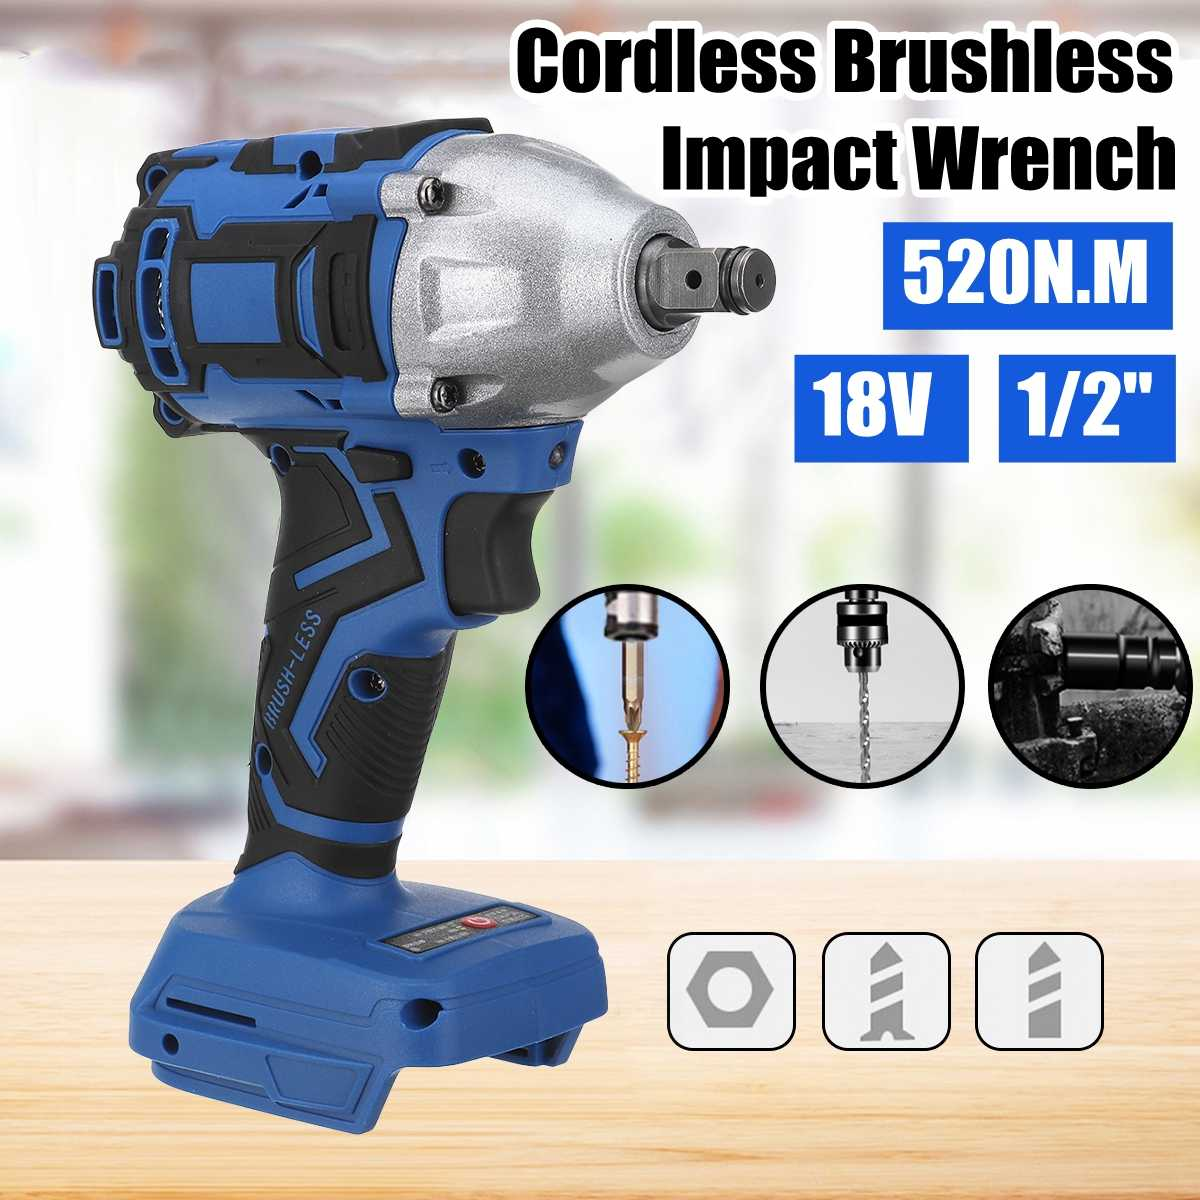 18V 520N.m. Li-Ion Cordless Impact Wrench 1/2'' Electric Wrench Replacement For Makita Battery